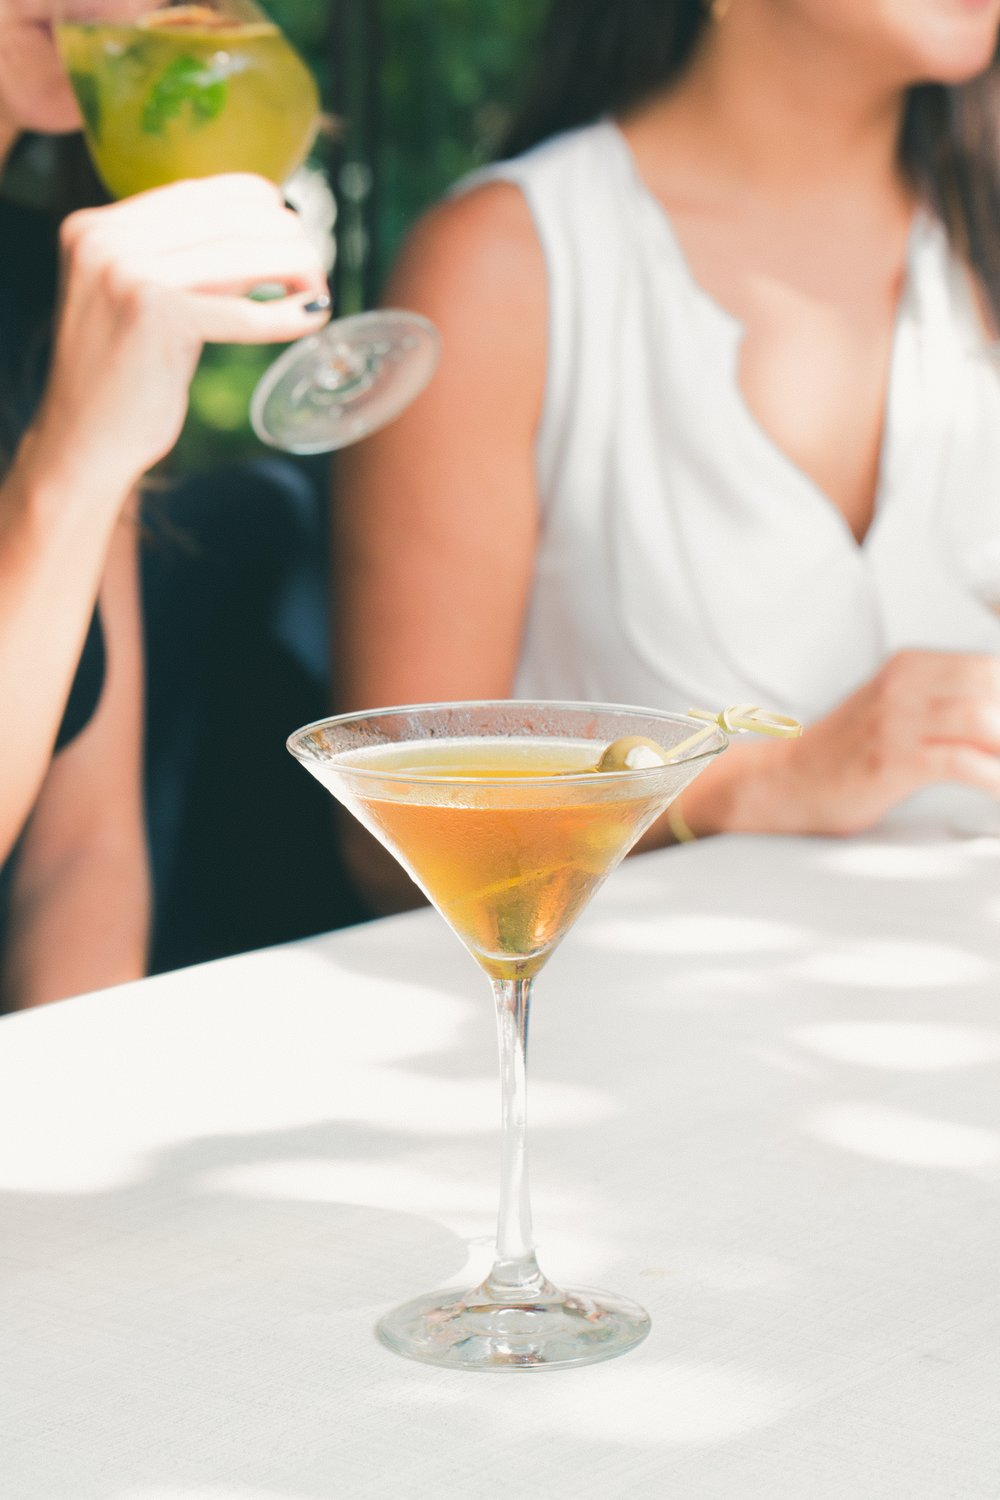 alcohol-close-up-cocktail-1097421.jpg